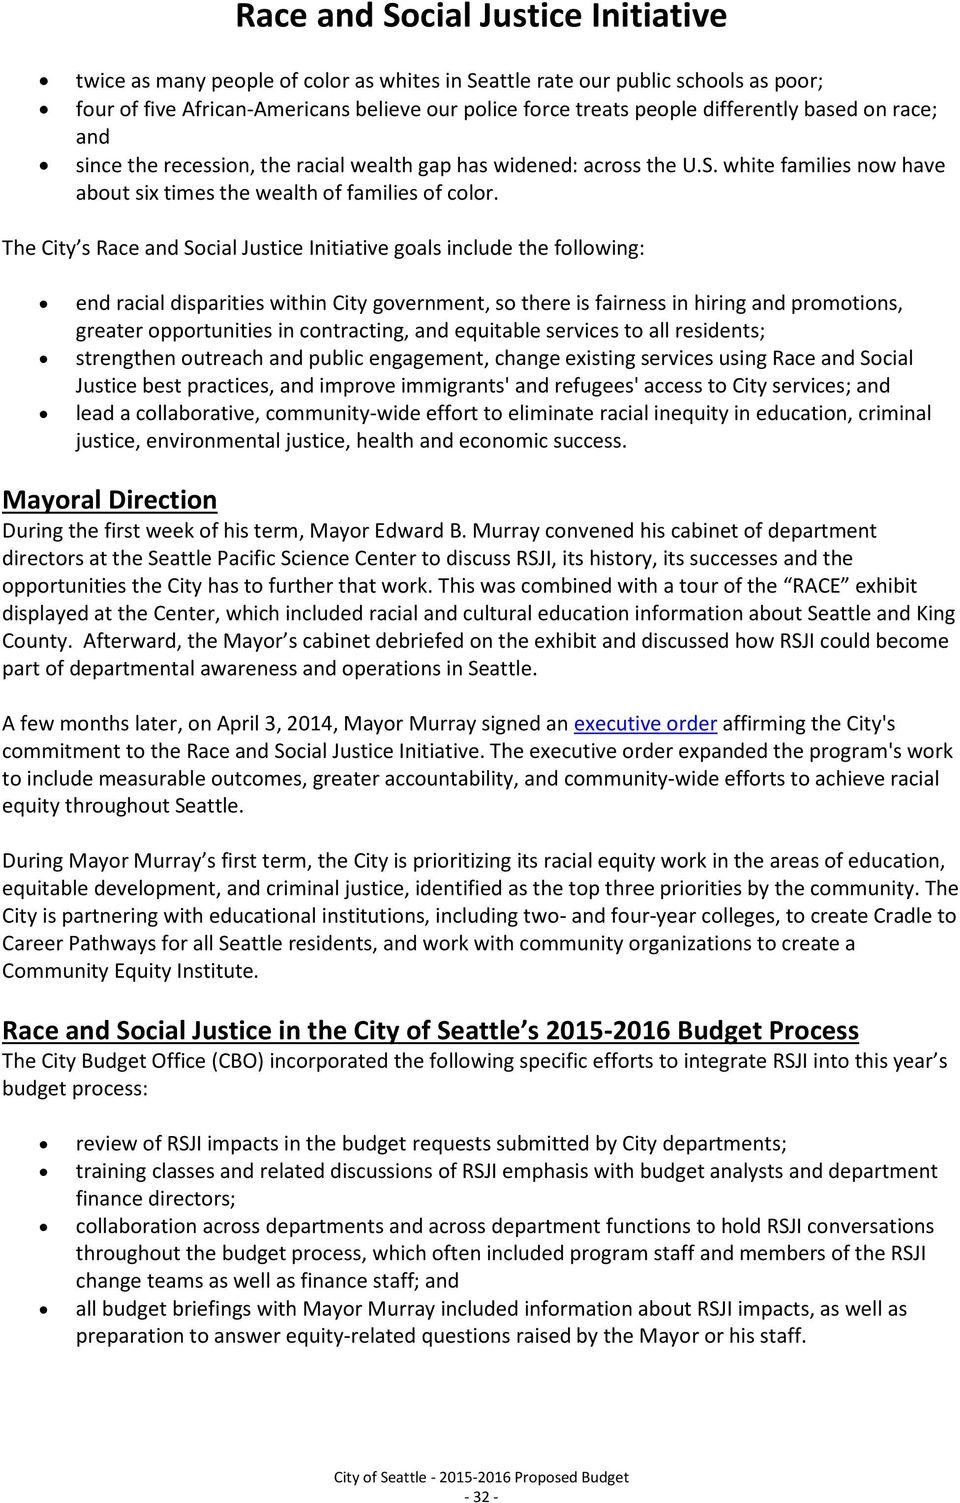 The City s Race and Social Justice Initiative goals include the following: end racial disparities within City government, so there is fairness in hiring and promotions, greater opportunities in